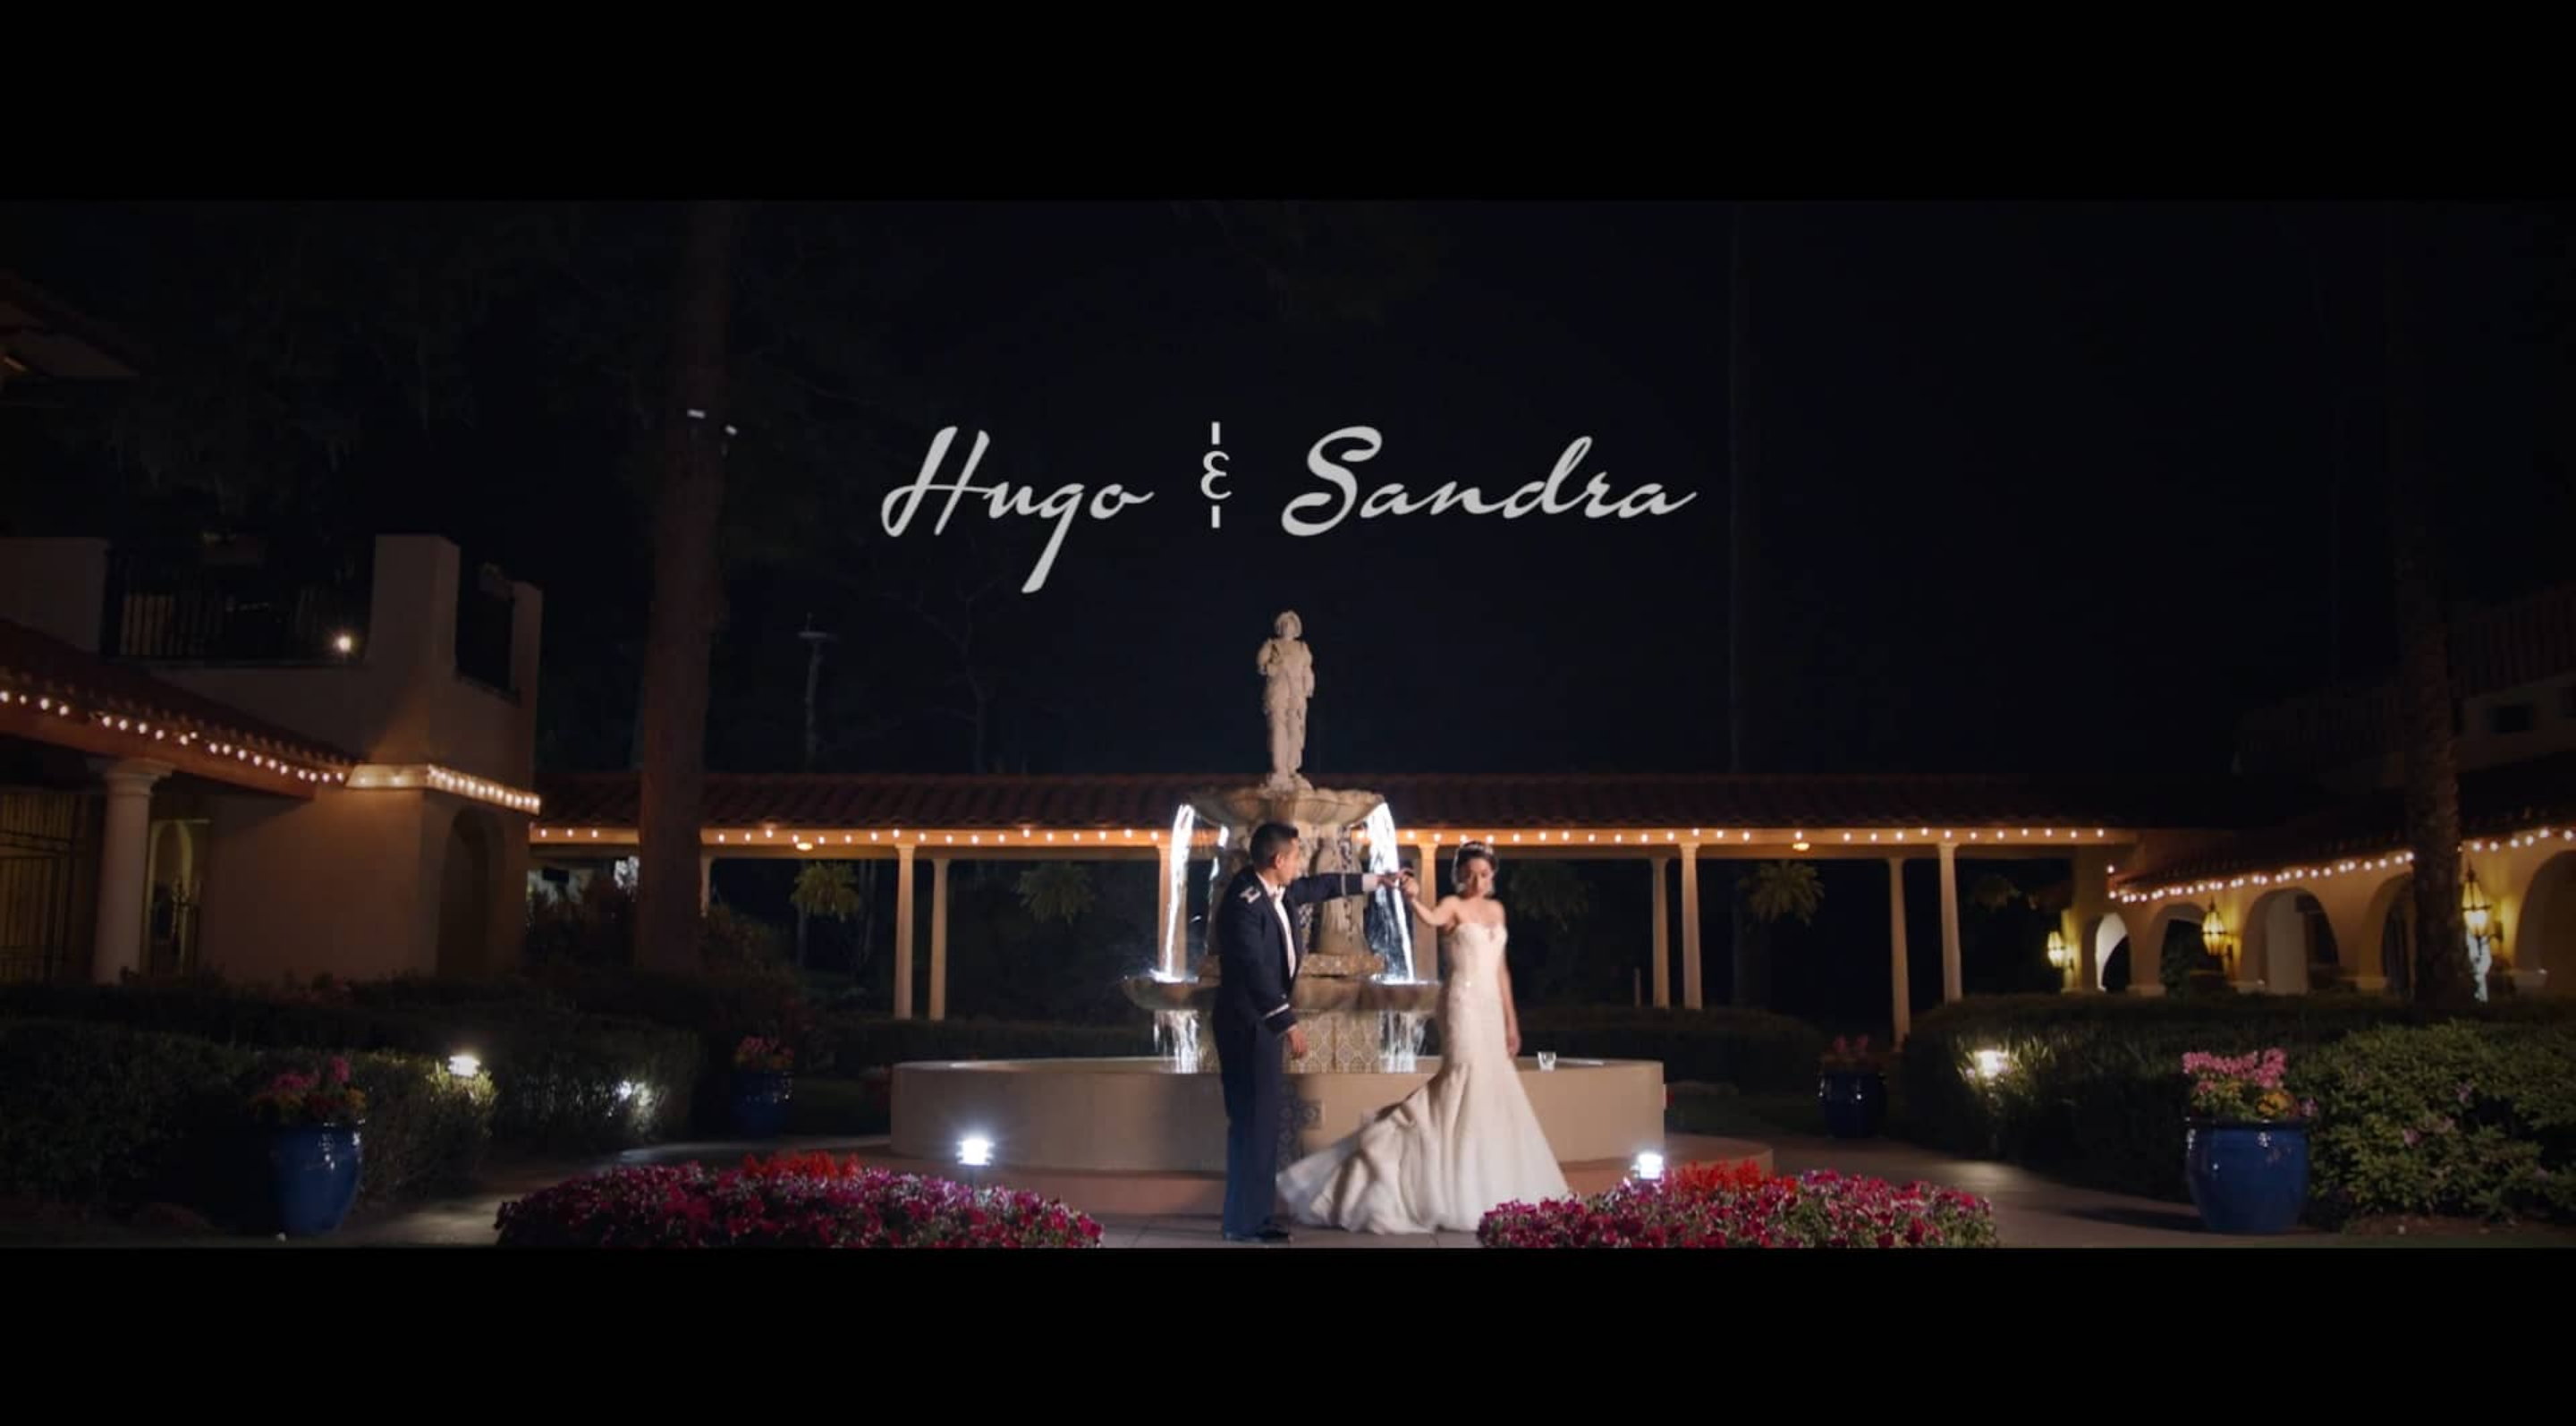 Hugo + Sandra | Howey-in-the-Hills, Florida | Mission Inn Resort & Club